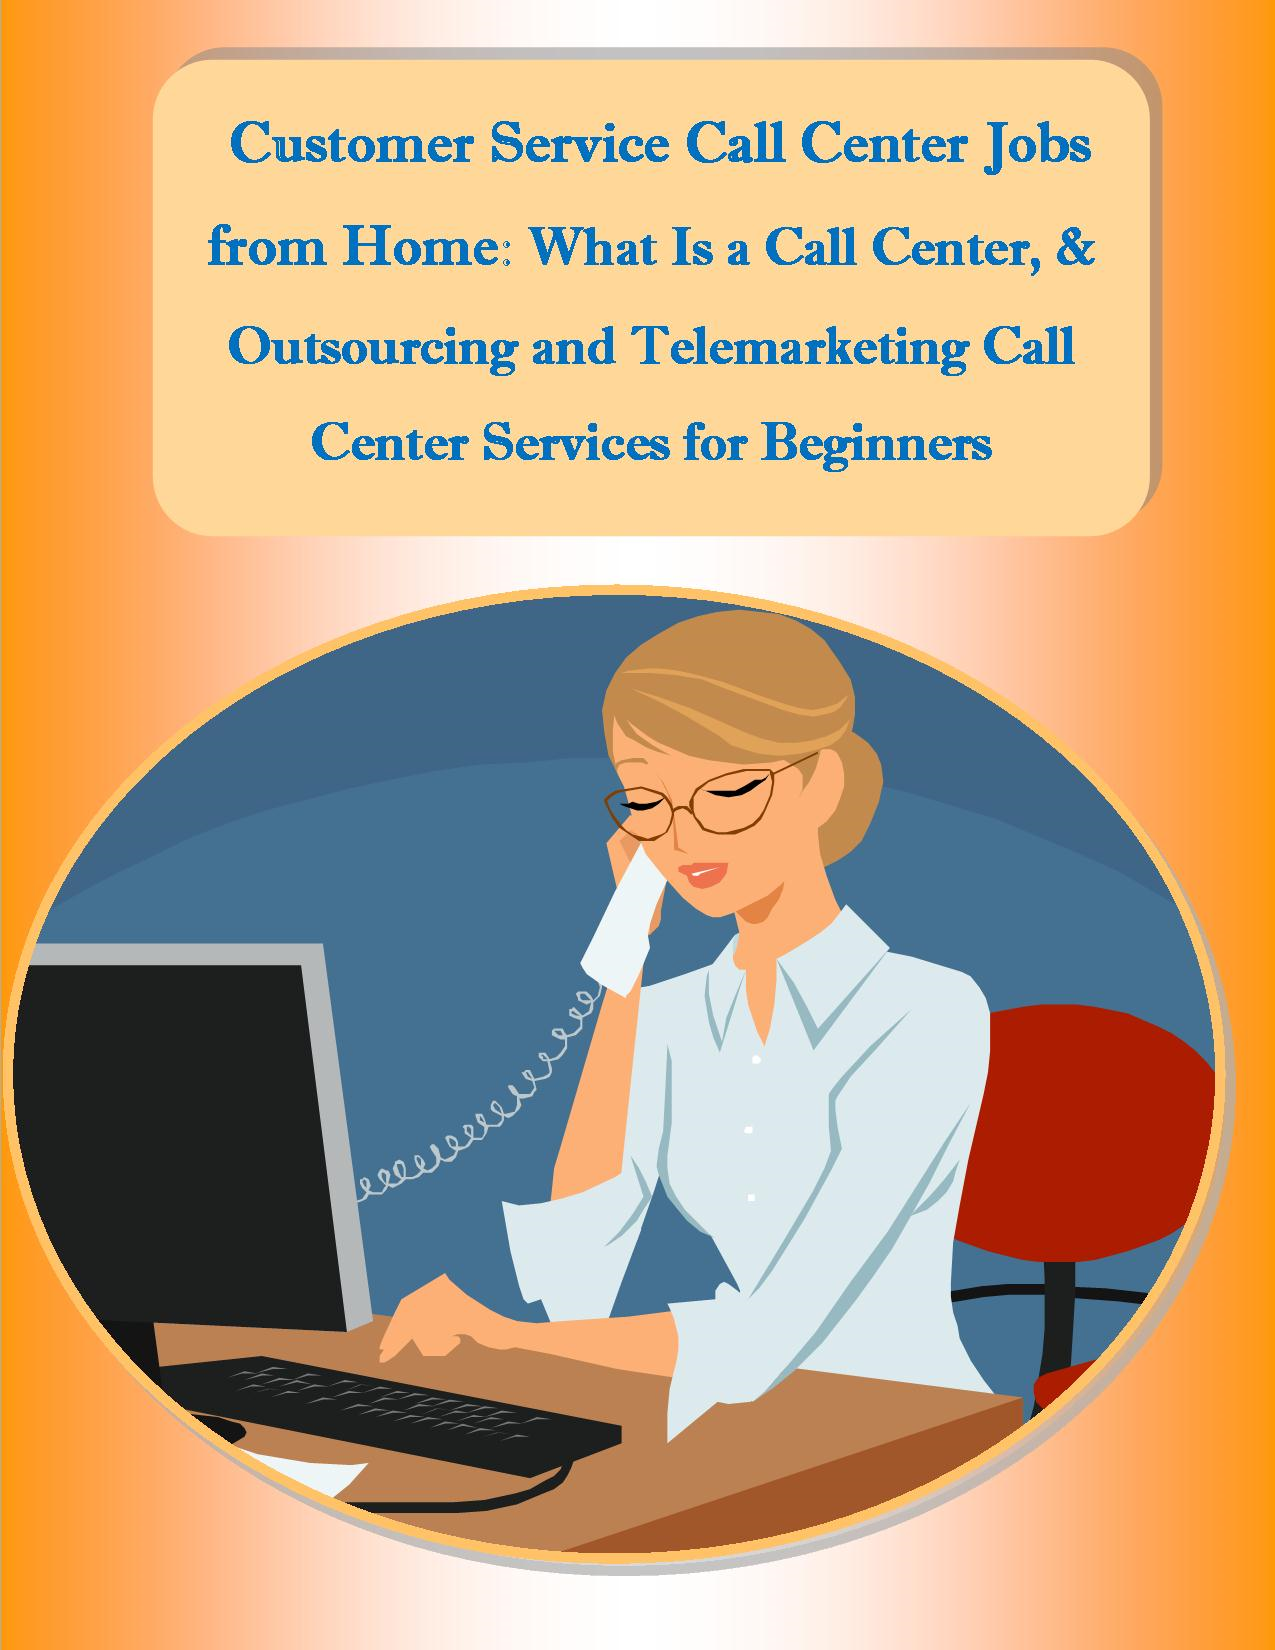 Customer Service Call Center Jobs from Home: What Is a Call Center, and Outsourcing and Telemarketing Call Center Services for Beginners